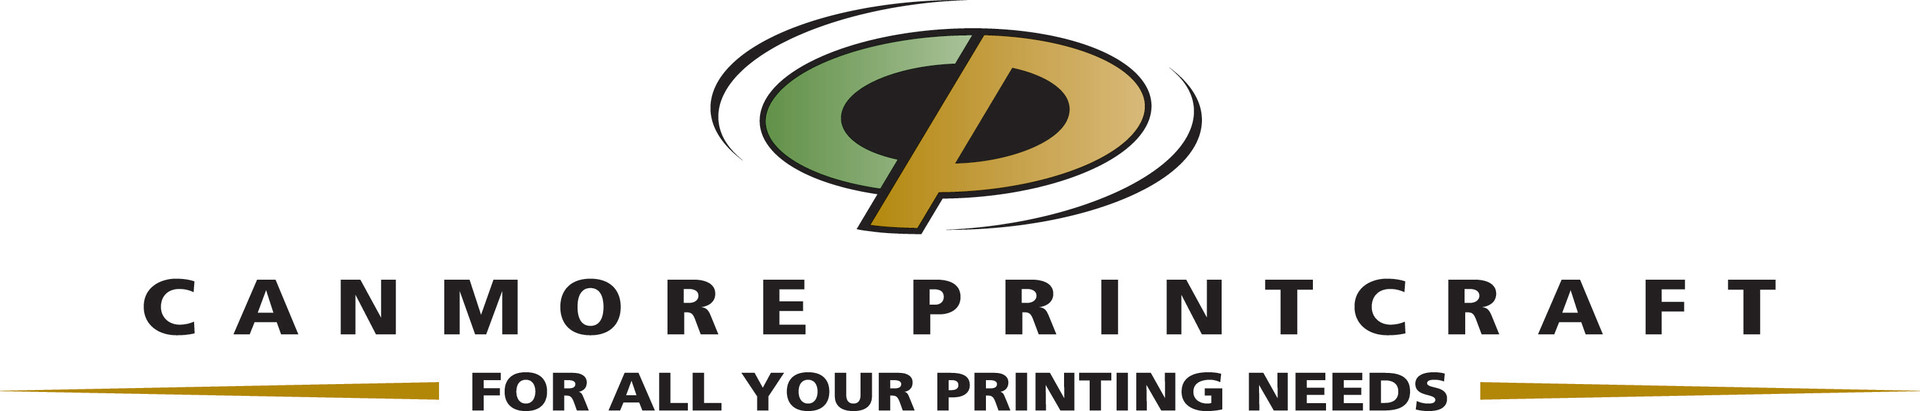 Canmore Printcraft